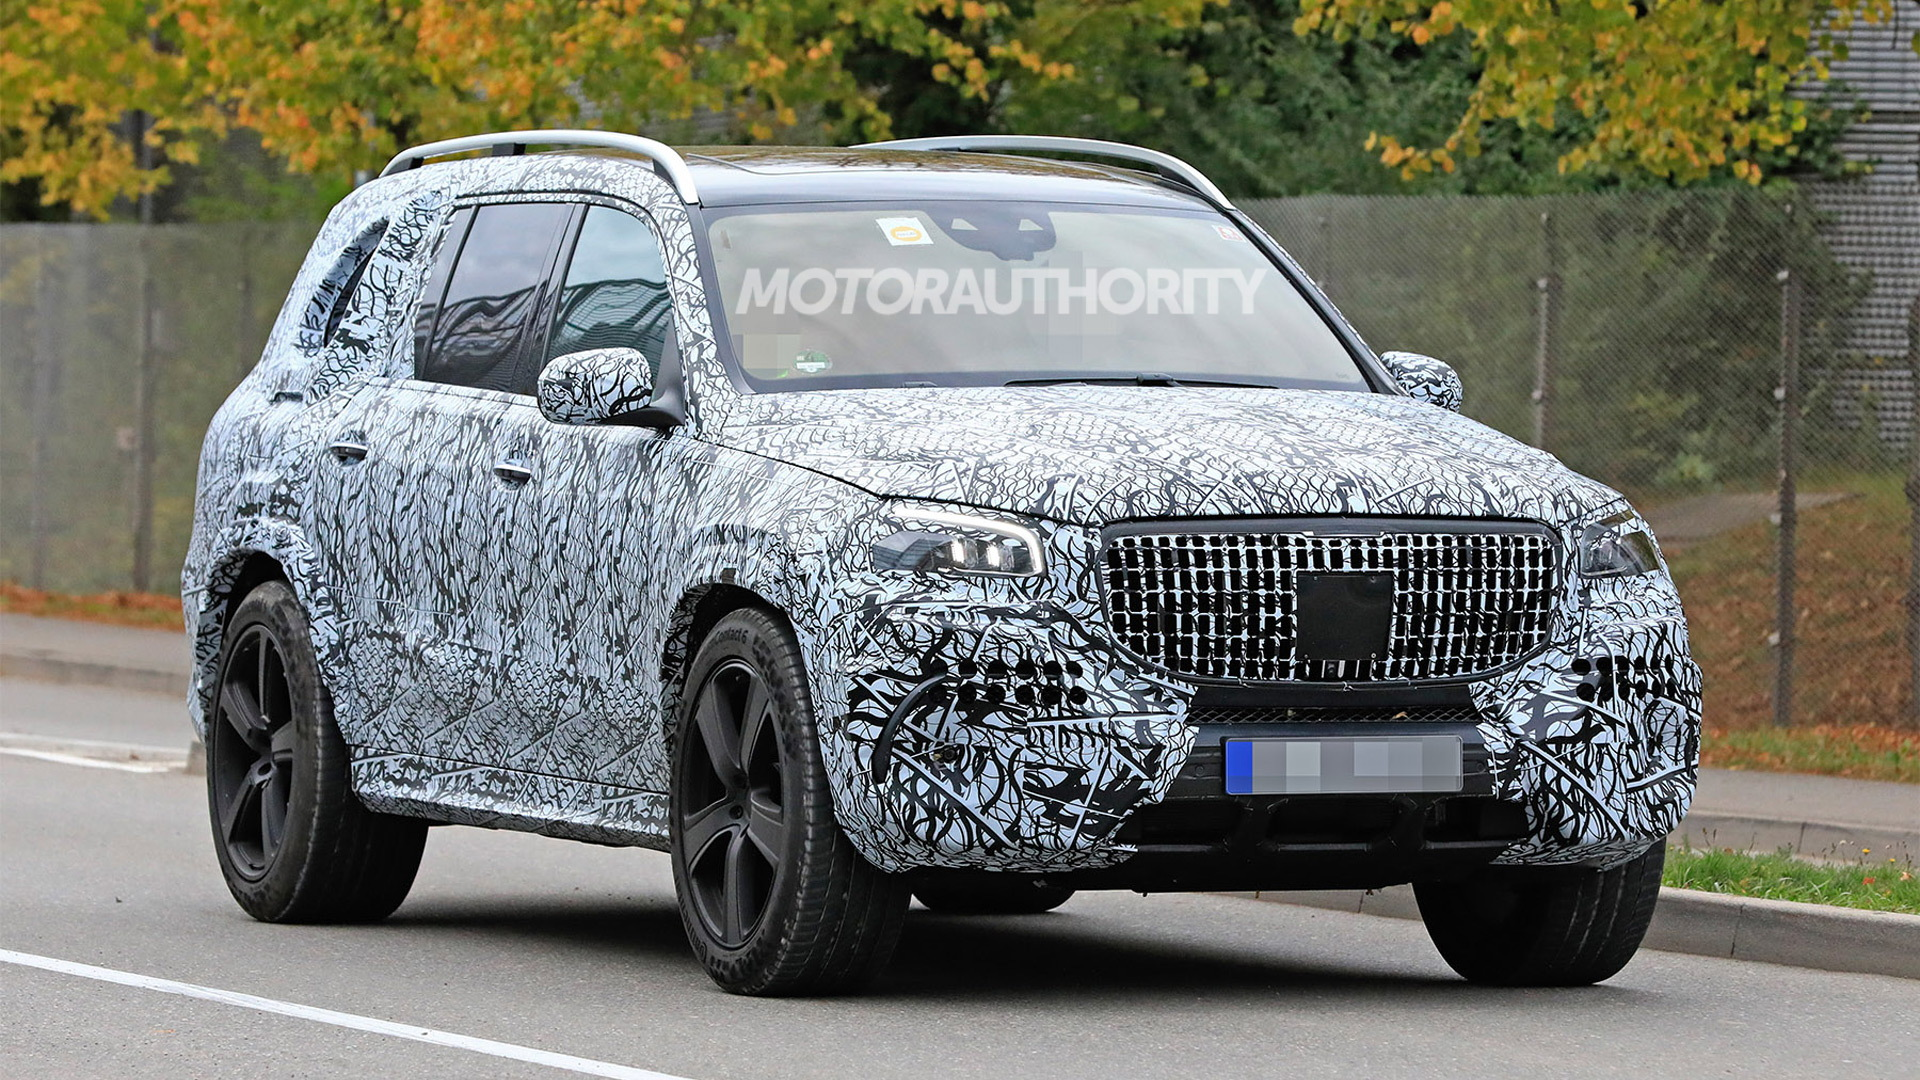 Mercedes-Maybach Building $200000 Ultra-Luxury SUV In America